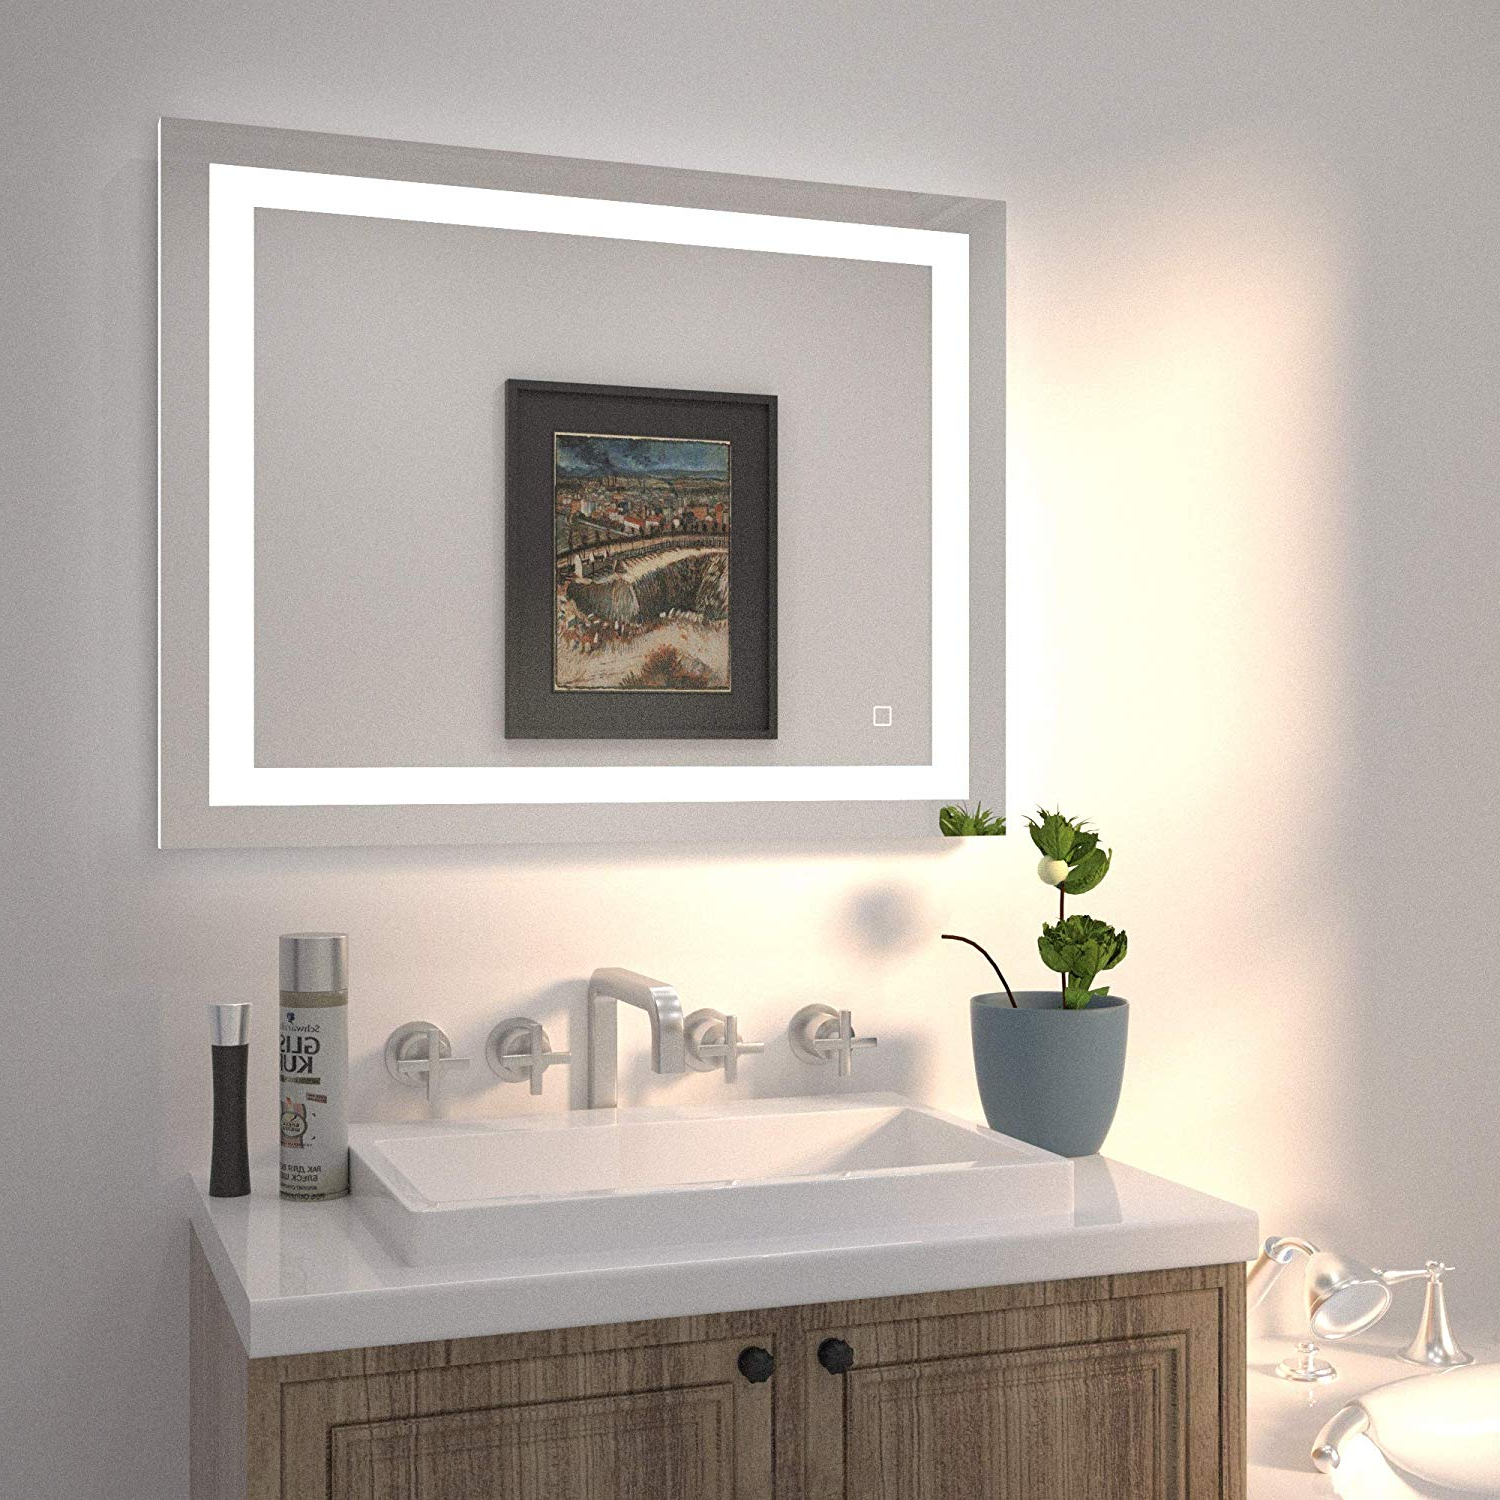 Lighted Bathroom Wall Mirrors Intended For Recent Hauschen 36X28 Inch Led Lighted Bathroom Wall Mounted Mirror With High Lumen+Cri 90 Adjustable Warm White/daylight Lights+Anti Fog+Dimmable Memory (View 10 of 20)